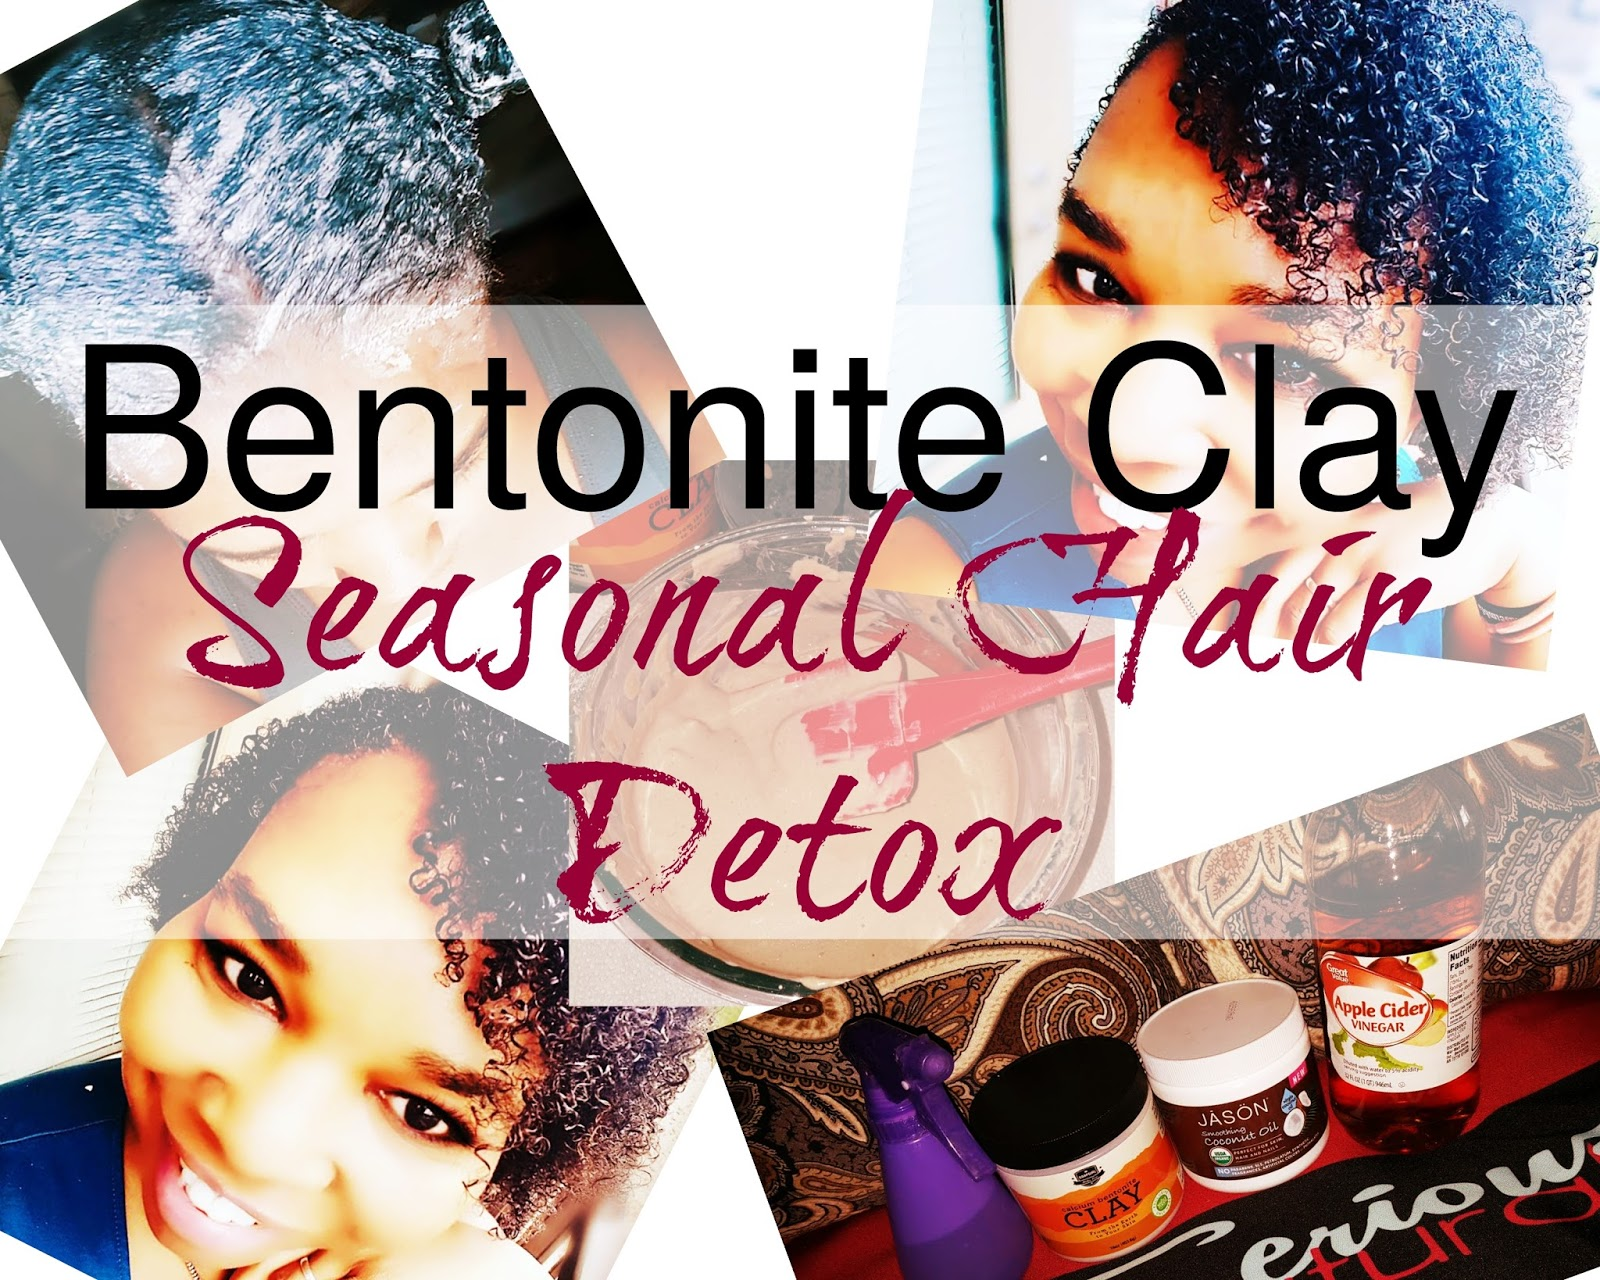 Bentonite clay is great for hair detoxes to facials and this healing clays is just one of many that's been used for centuries in the removal of toxins.